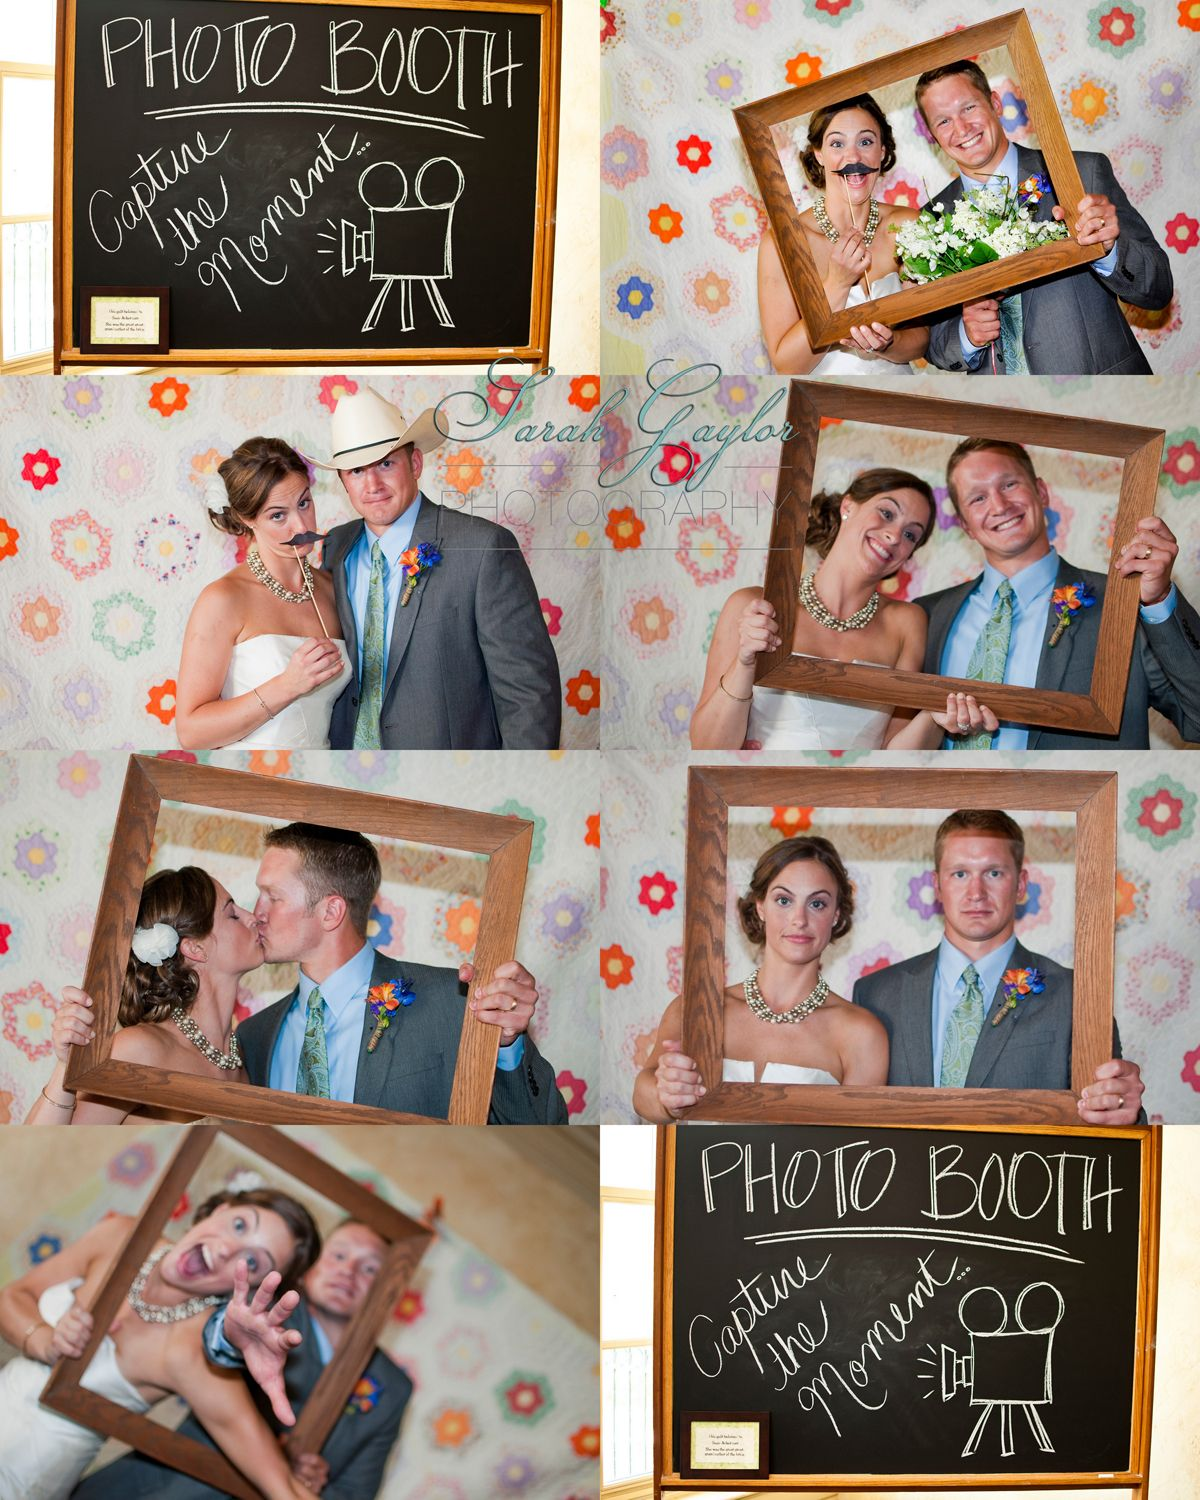 wedding photo booth props printable%0A have a photobooth at the wedding that the guest take their pictures in   then put